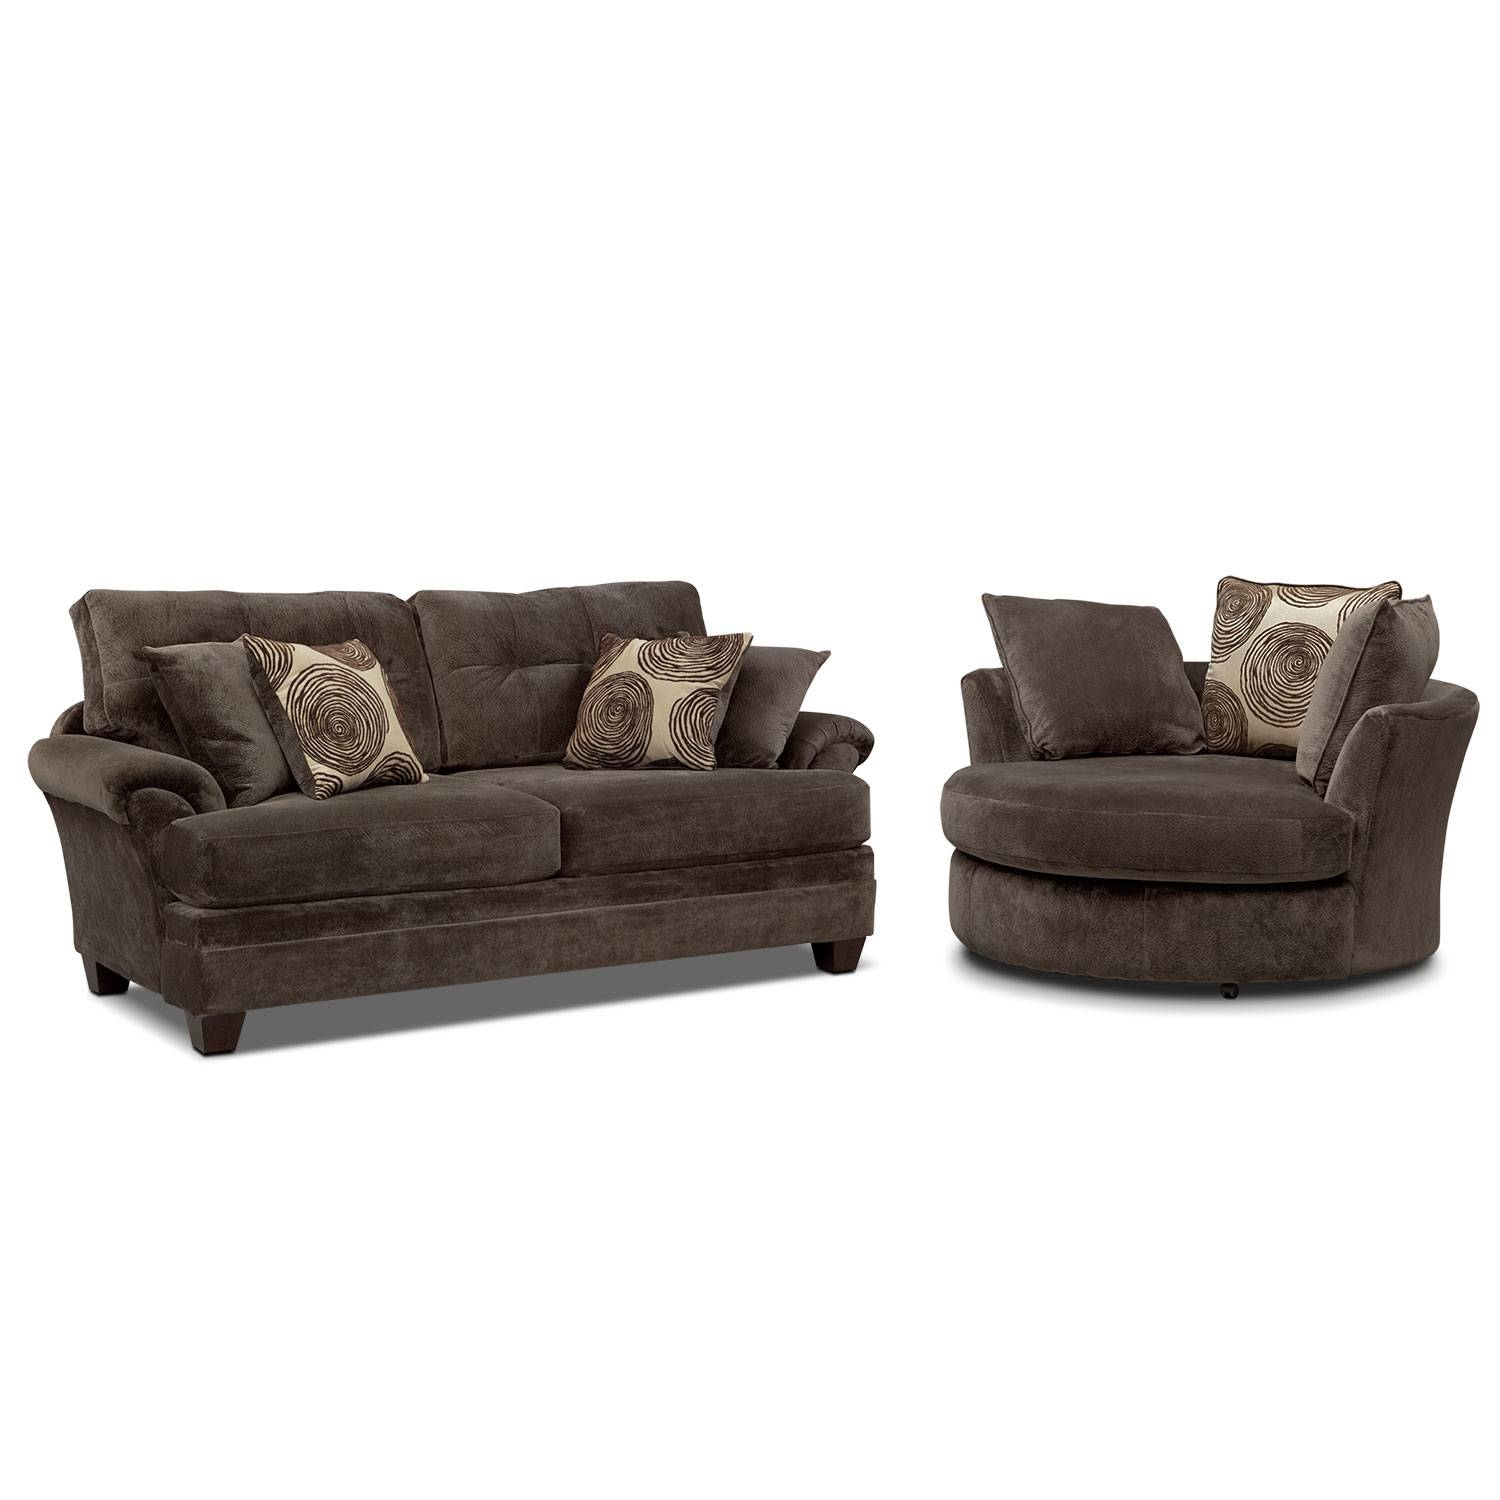 Cordelle Sofa And Swivel Chair Set - Chocolate | Value City Furniture throughout Sofa With Swivel Chair (Image 6 of 30)